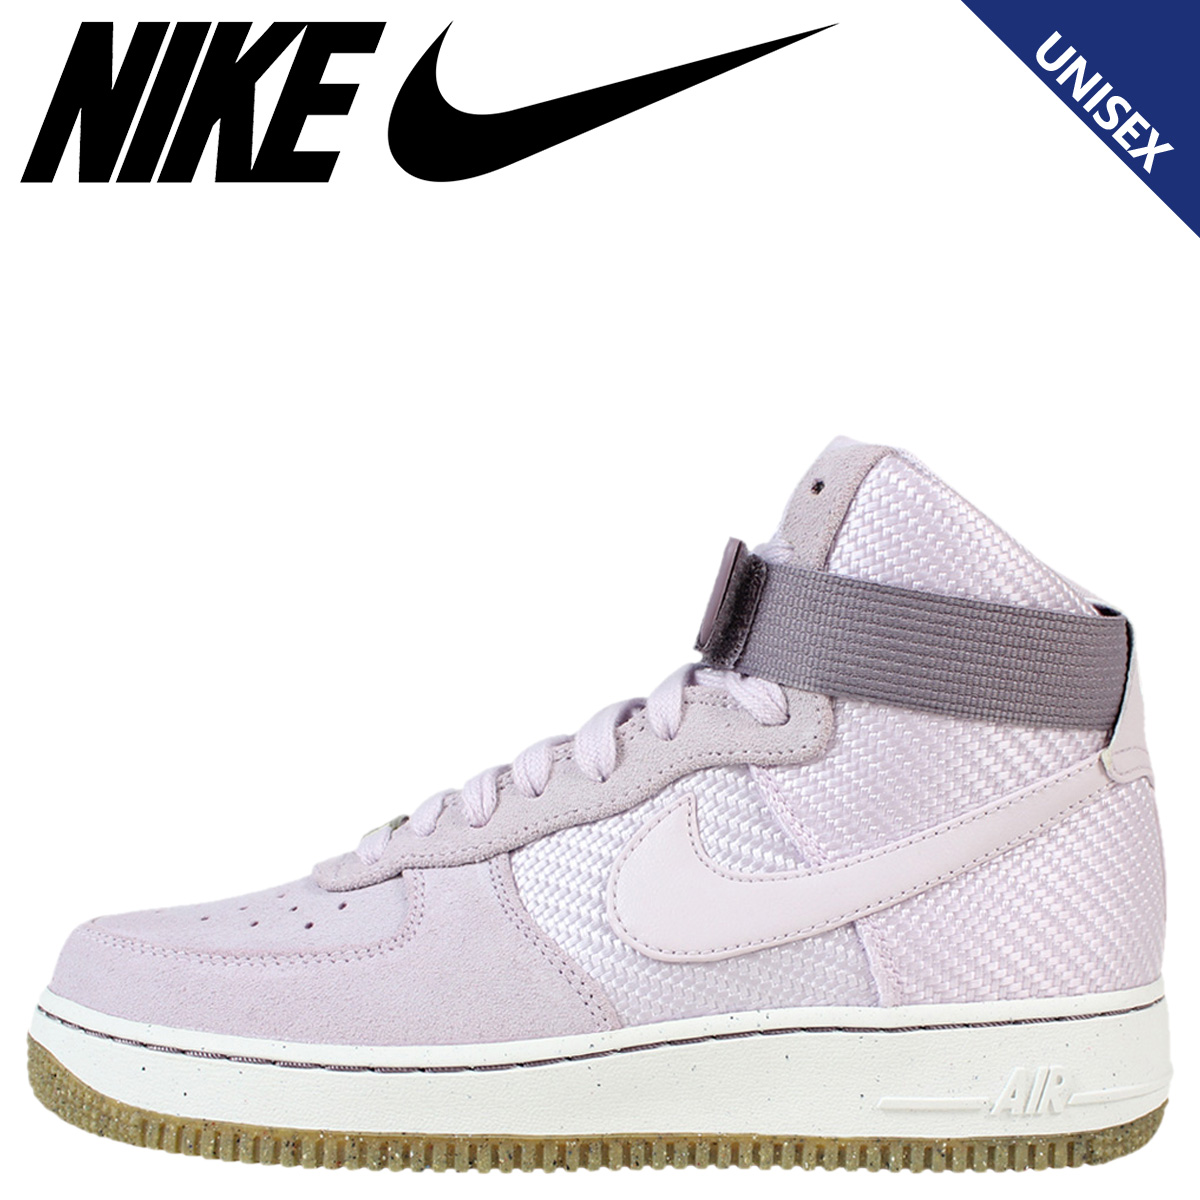 Goods Lab: Nike NIKE air force 1 lady's men's sneakers WMNS